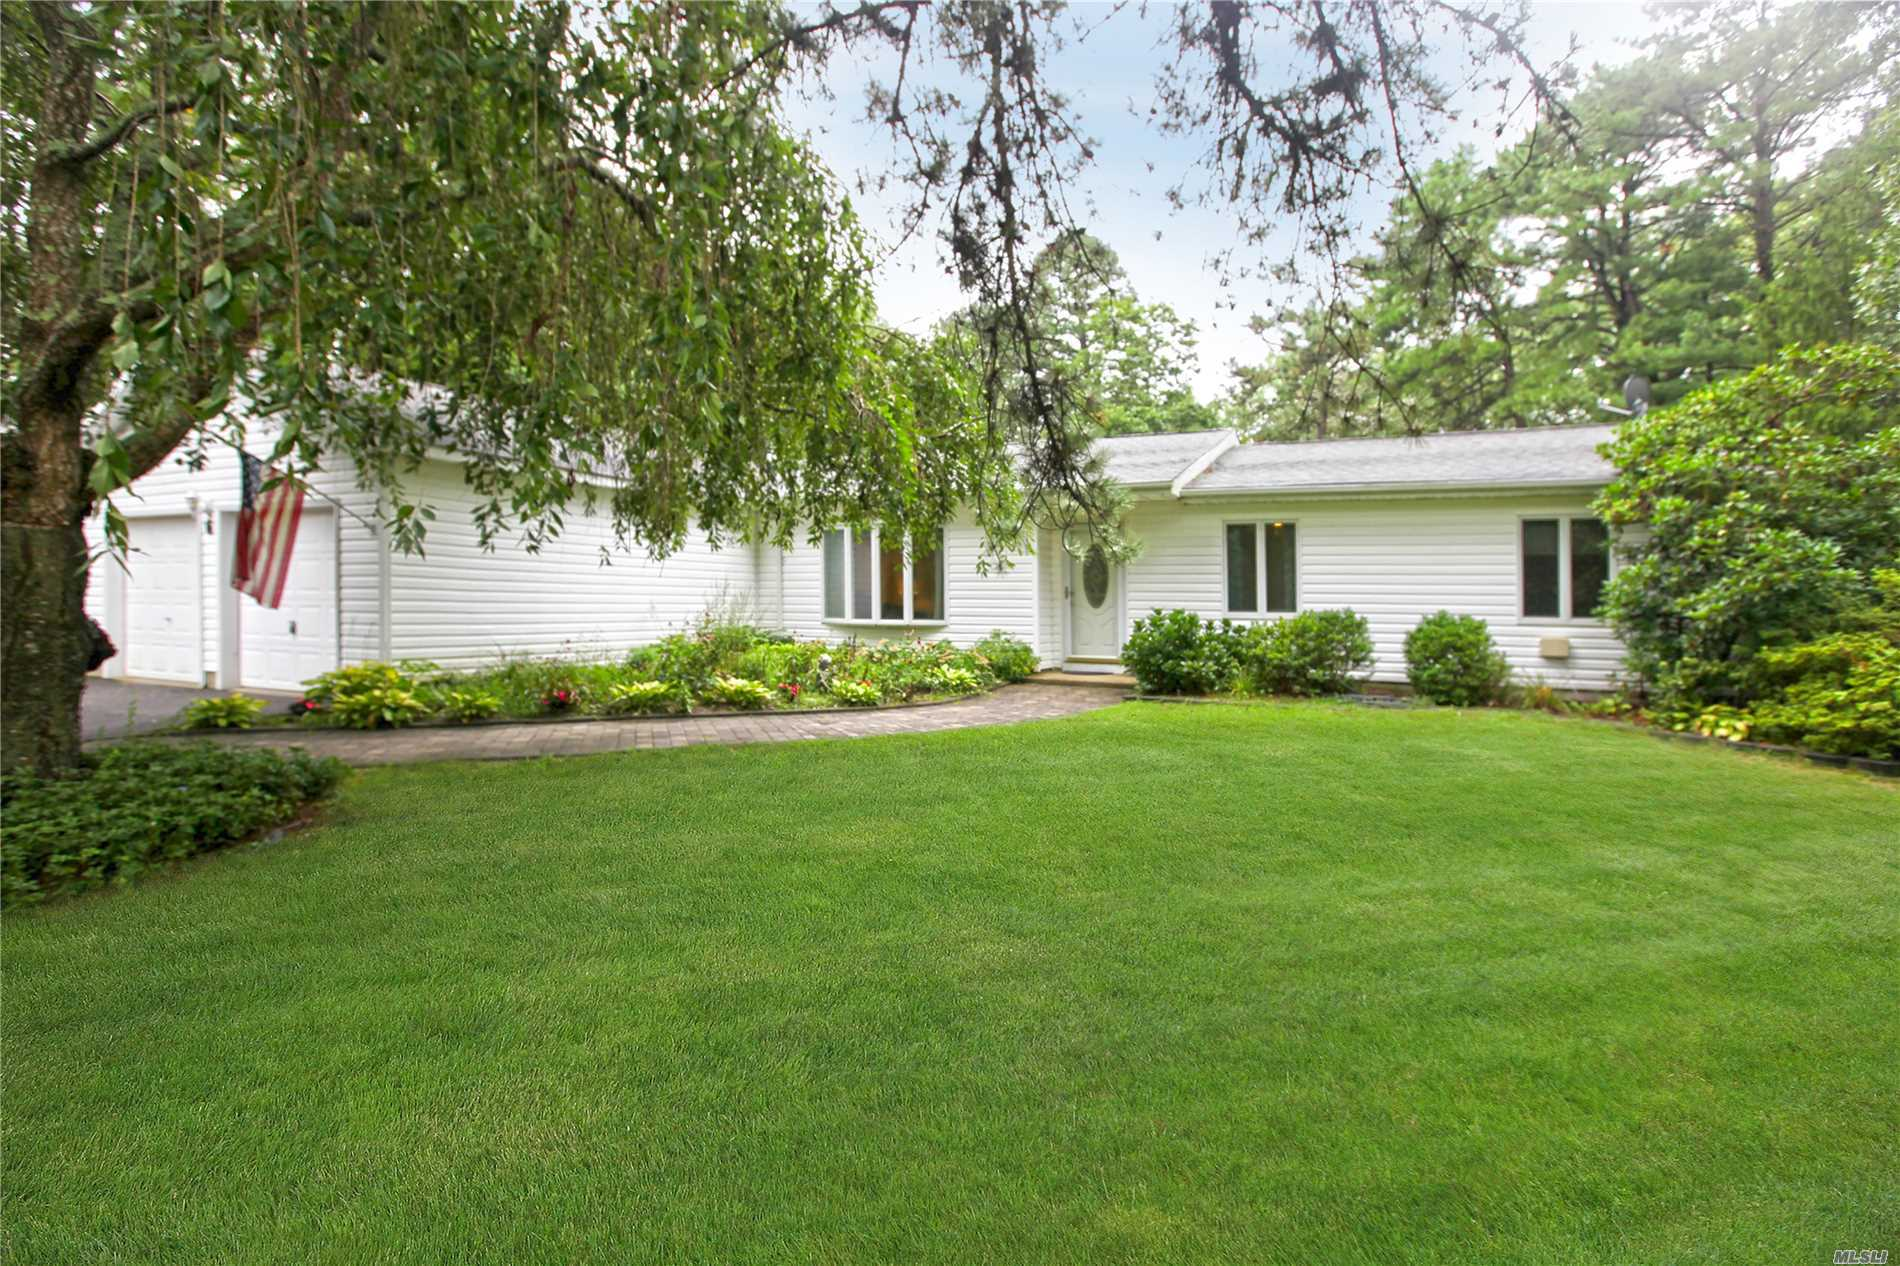 6 Bruce Dr - Manorville, New York